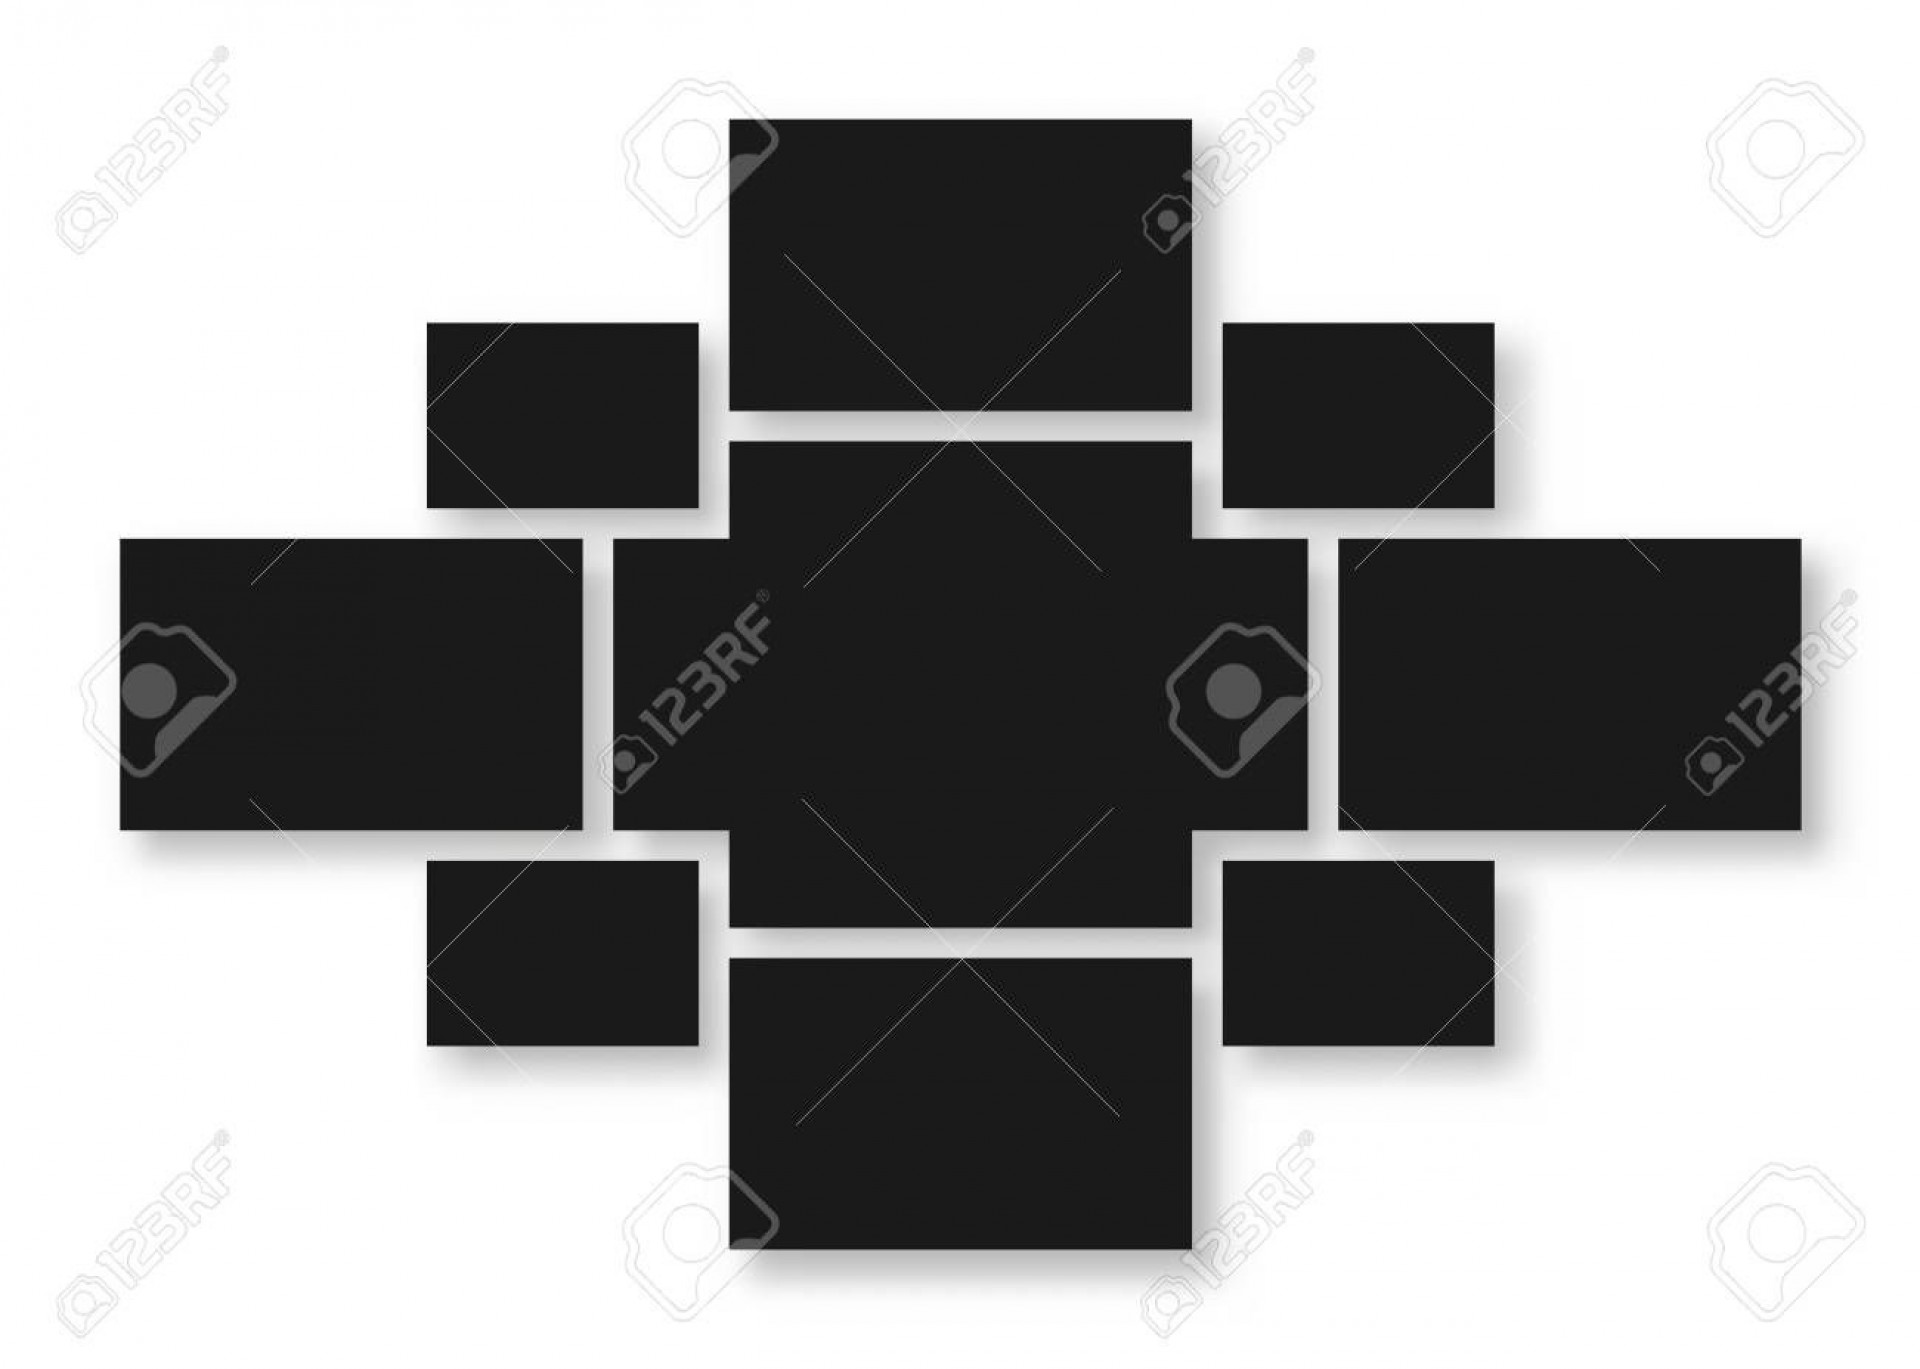 002 Fantastic Free Picture Collage Template Idea  Photo After Effect Maker Download1920